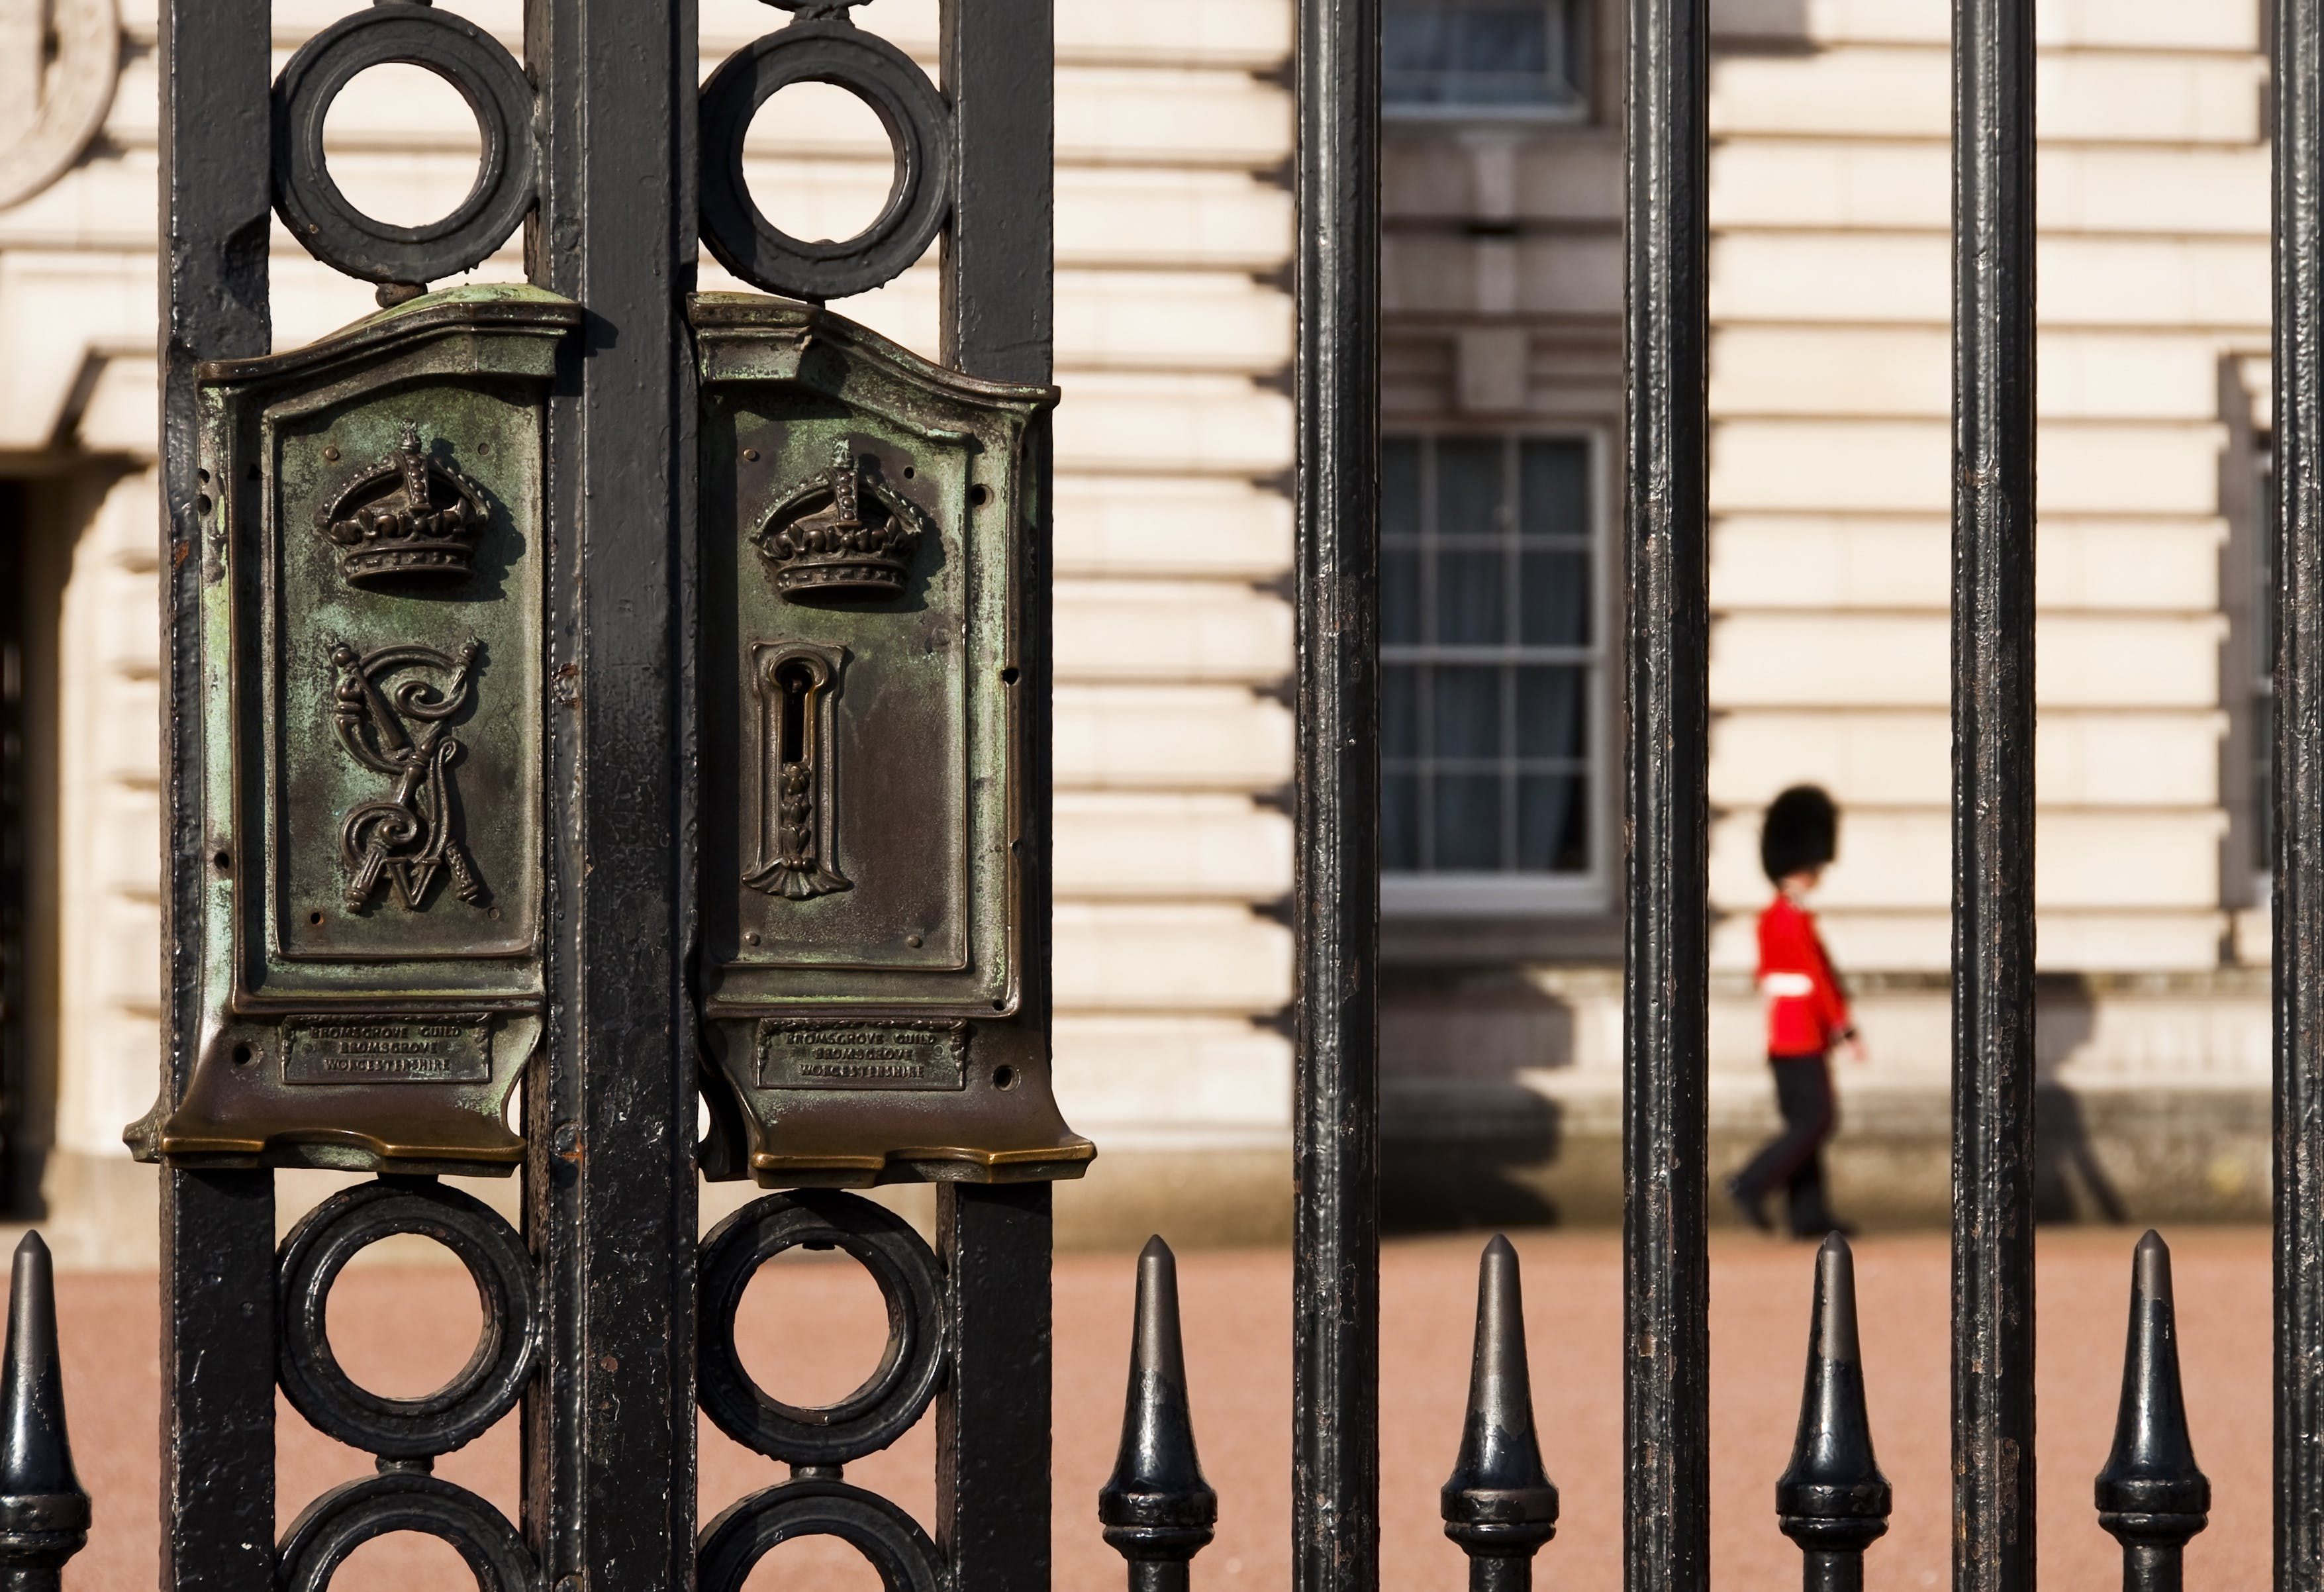 Ways to get a Royal fix in London